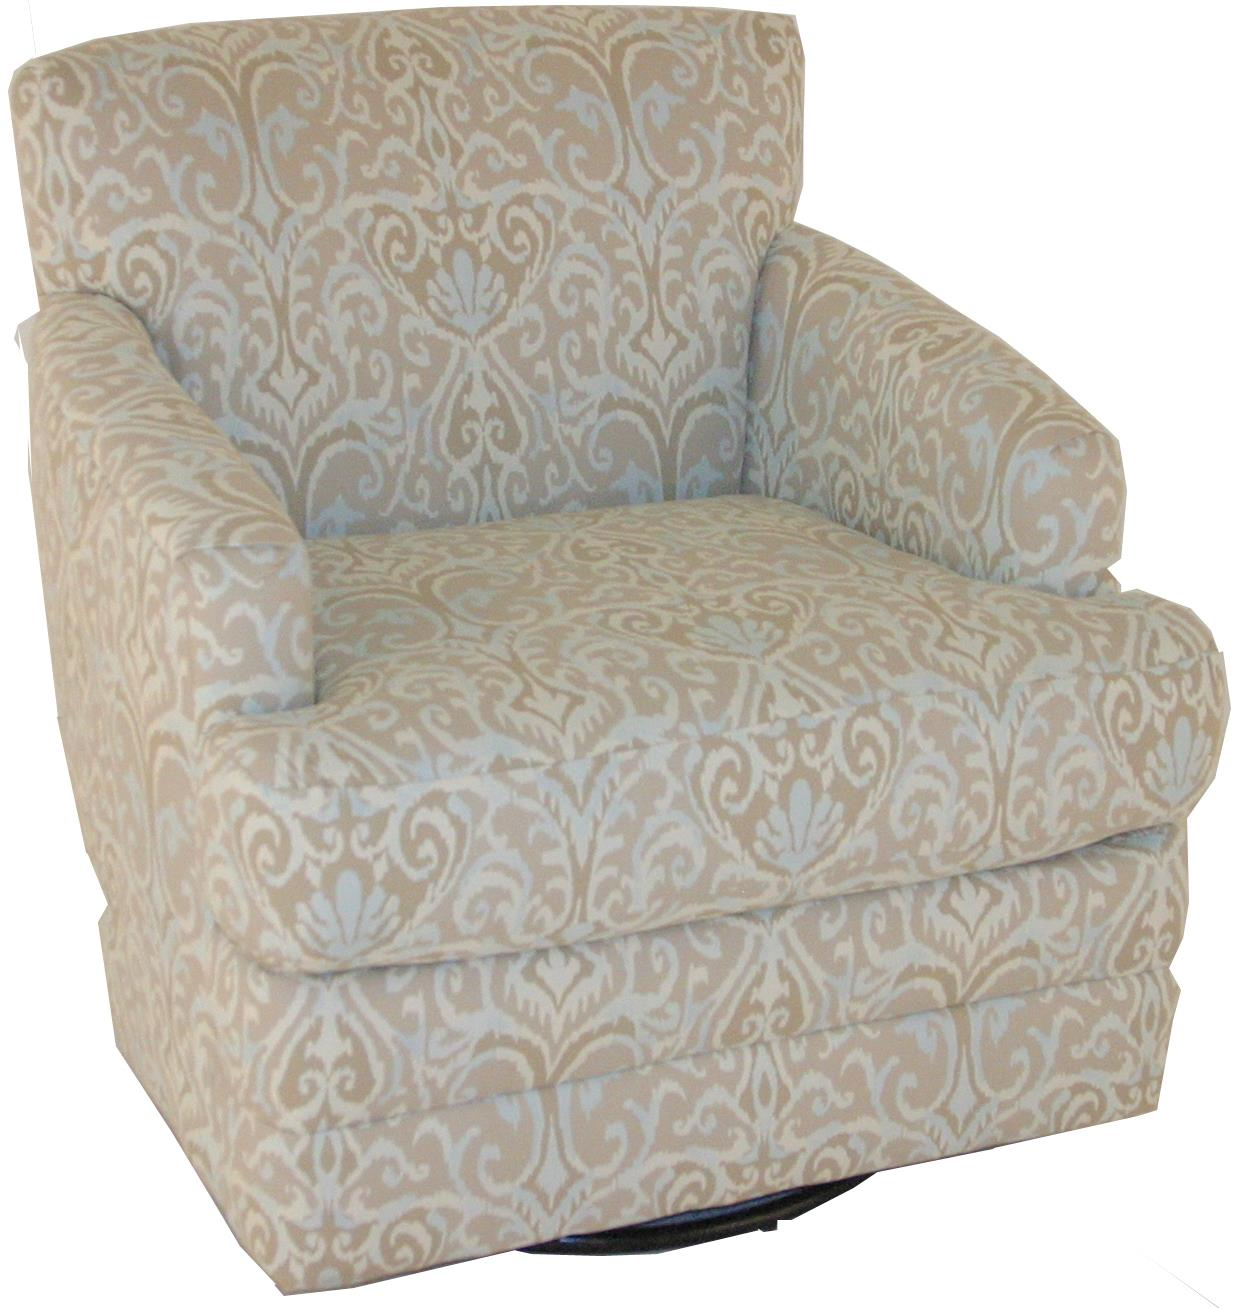 Chairs america accent chairs and ottomans transitional for Swivel accent chairs with arms